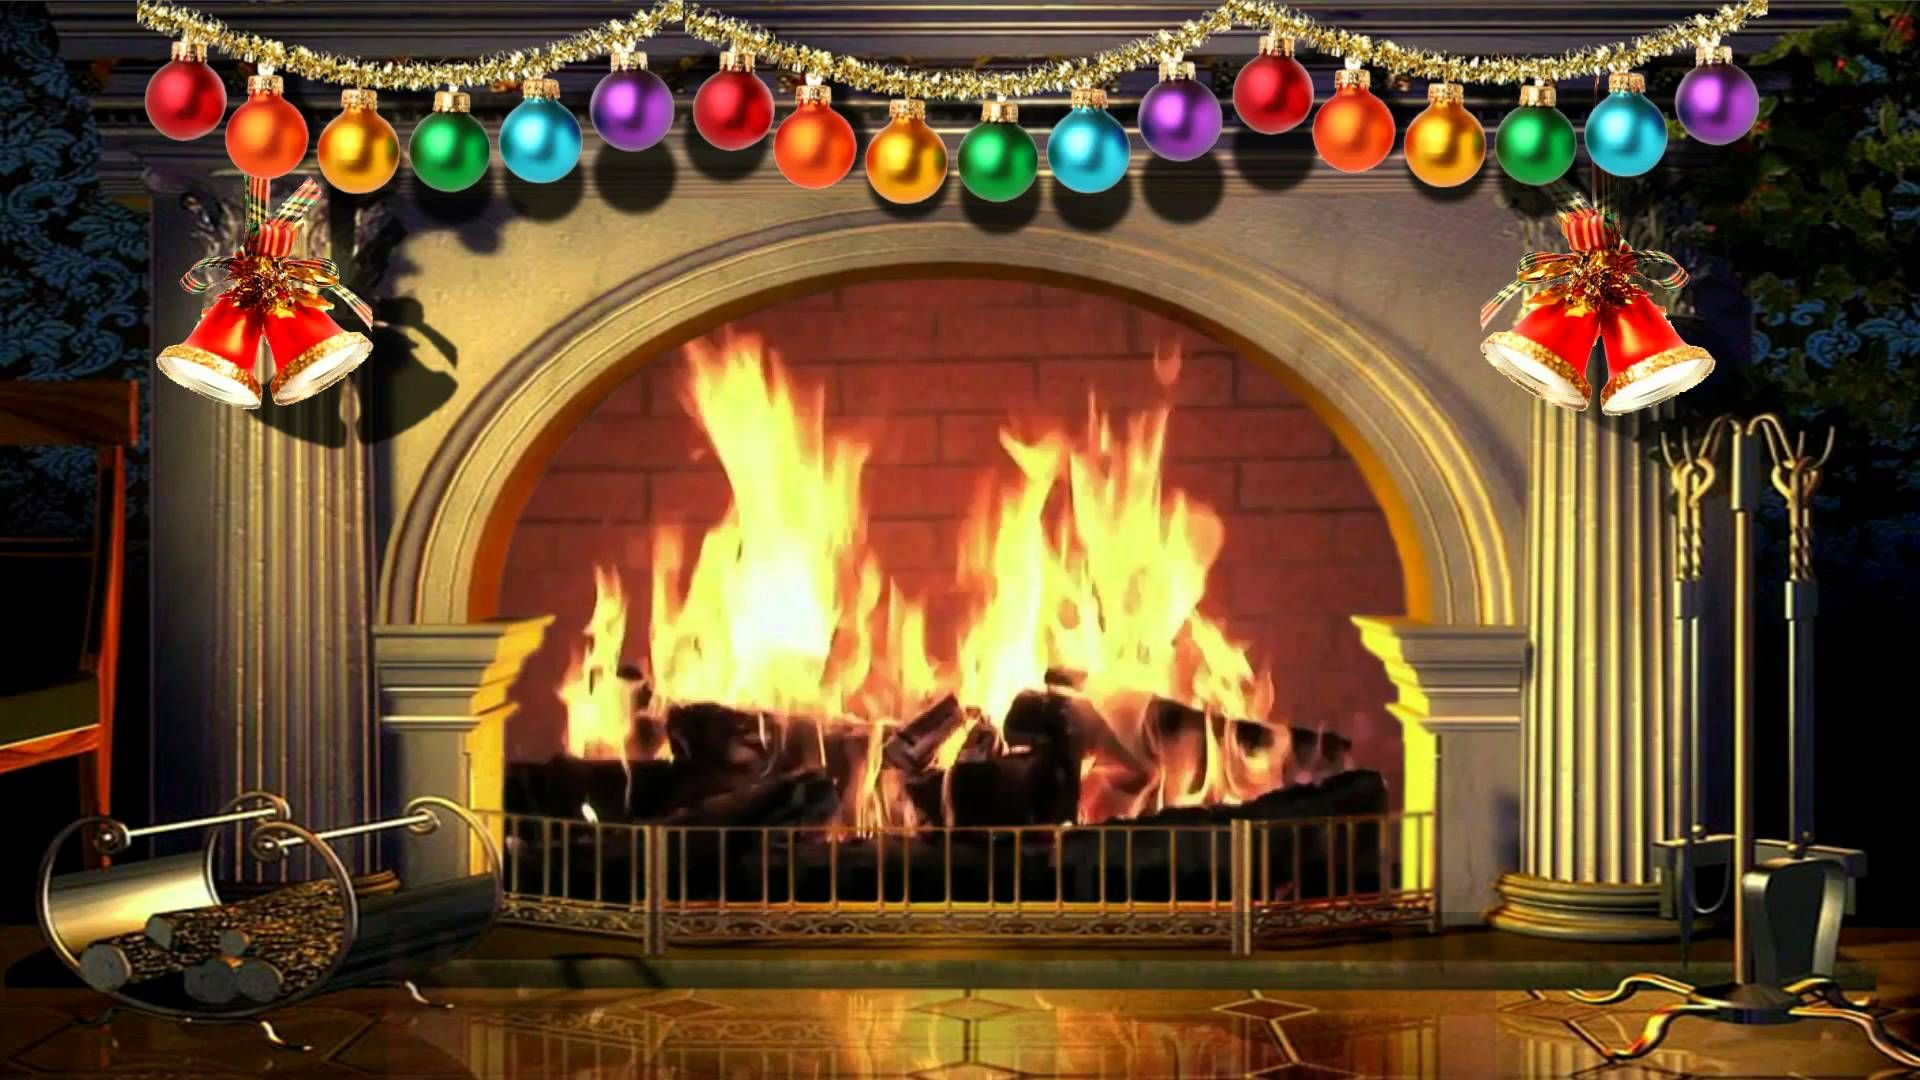 christmas scenes fireplace gif Virtual Christmas